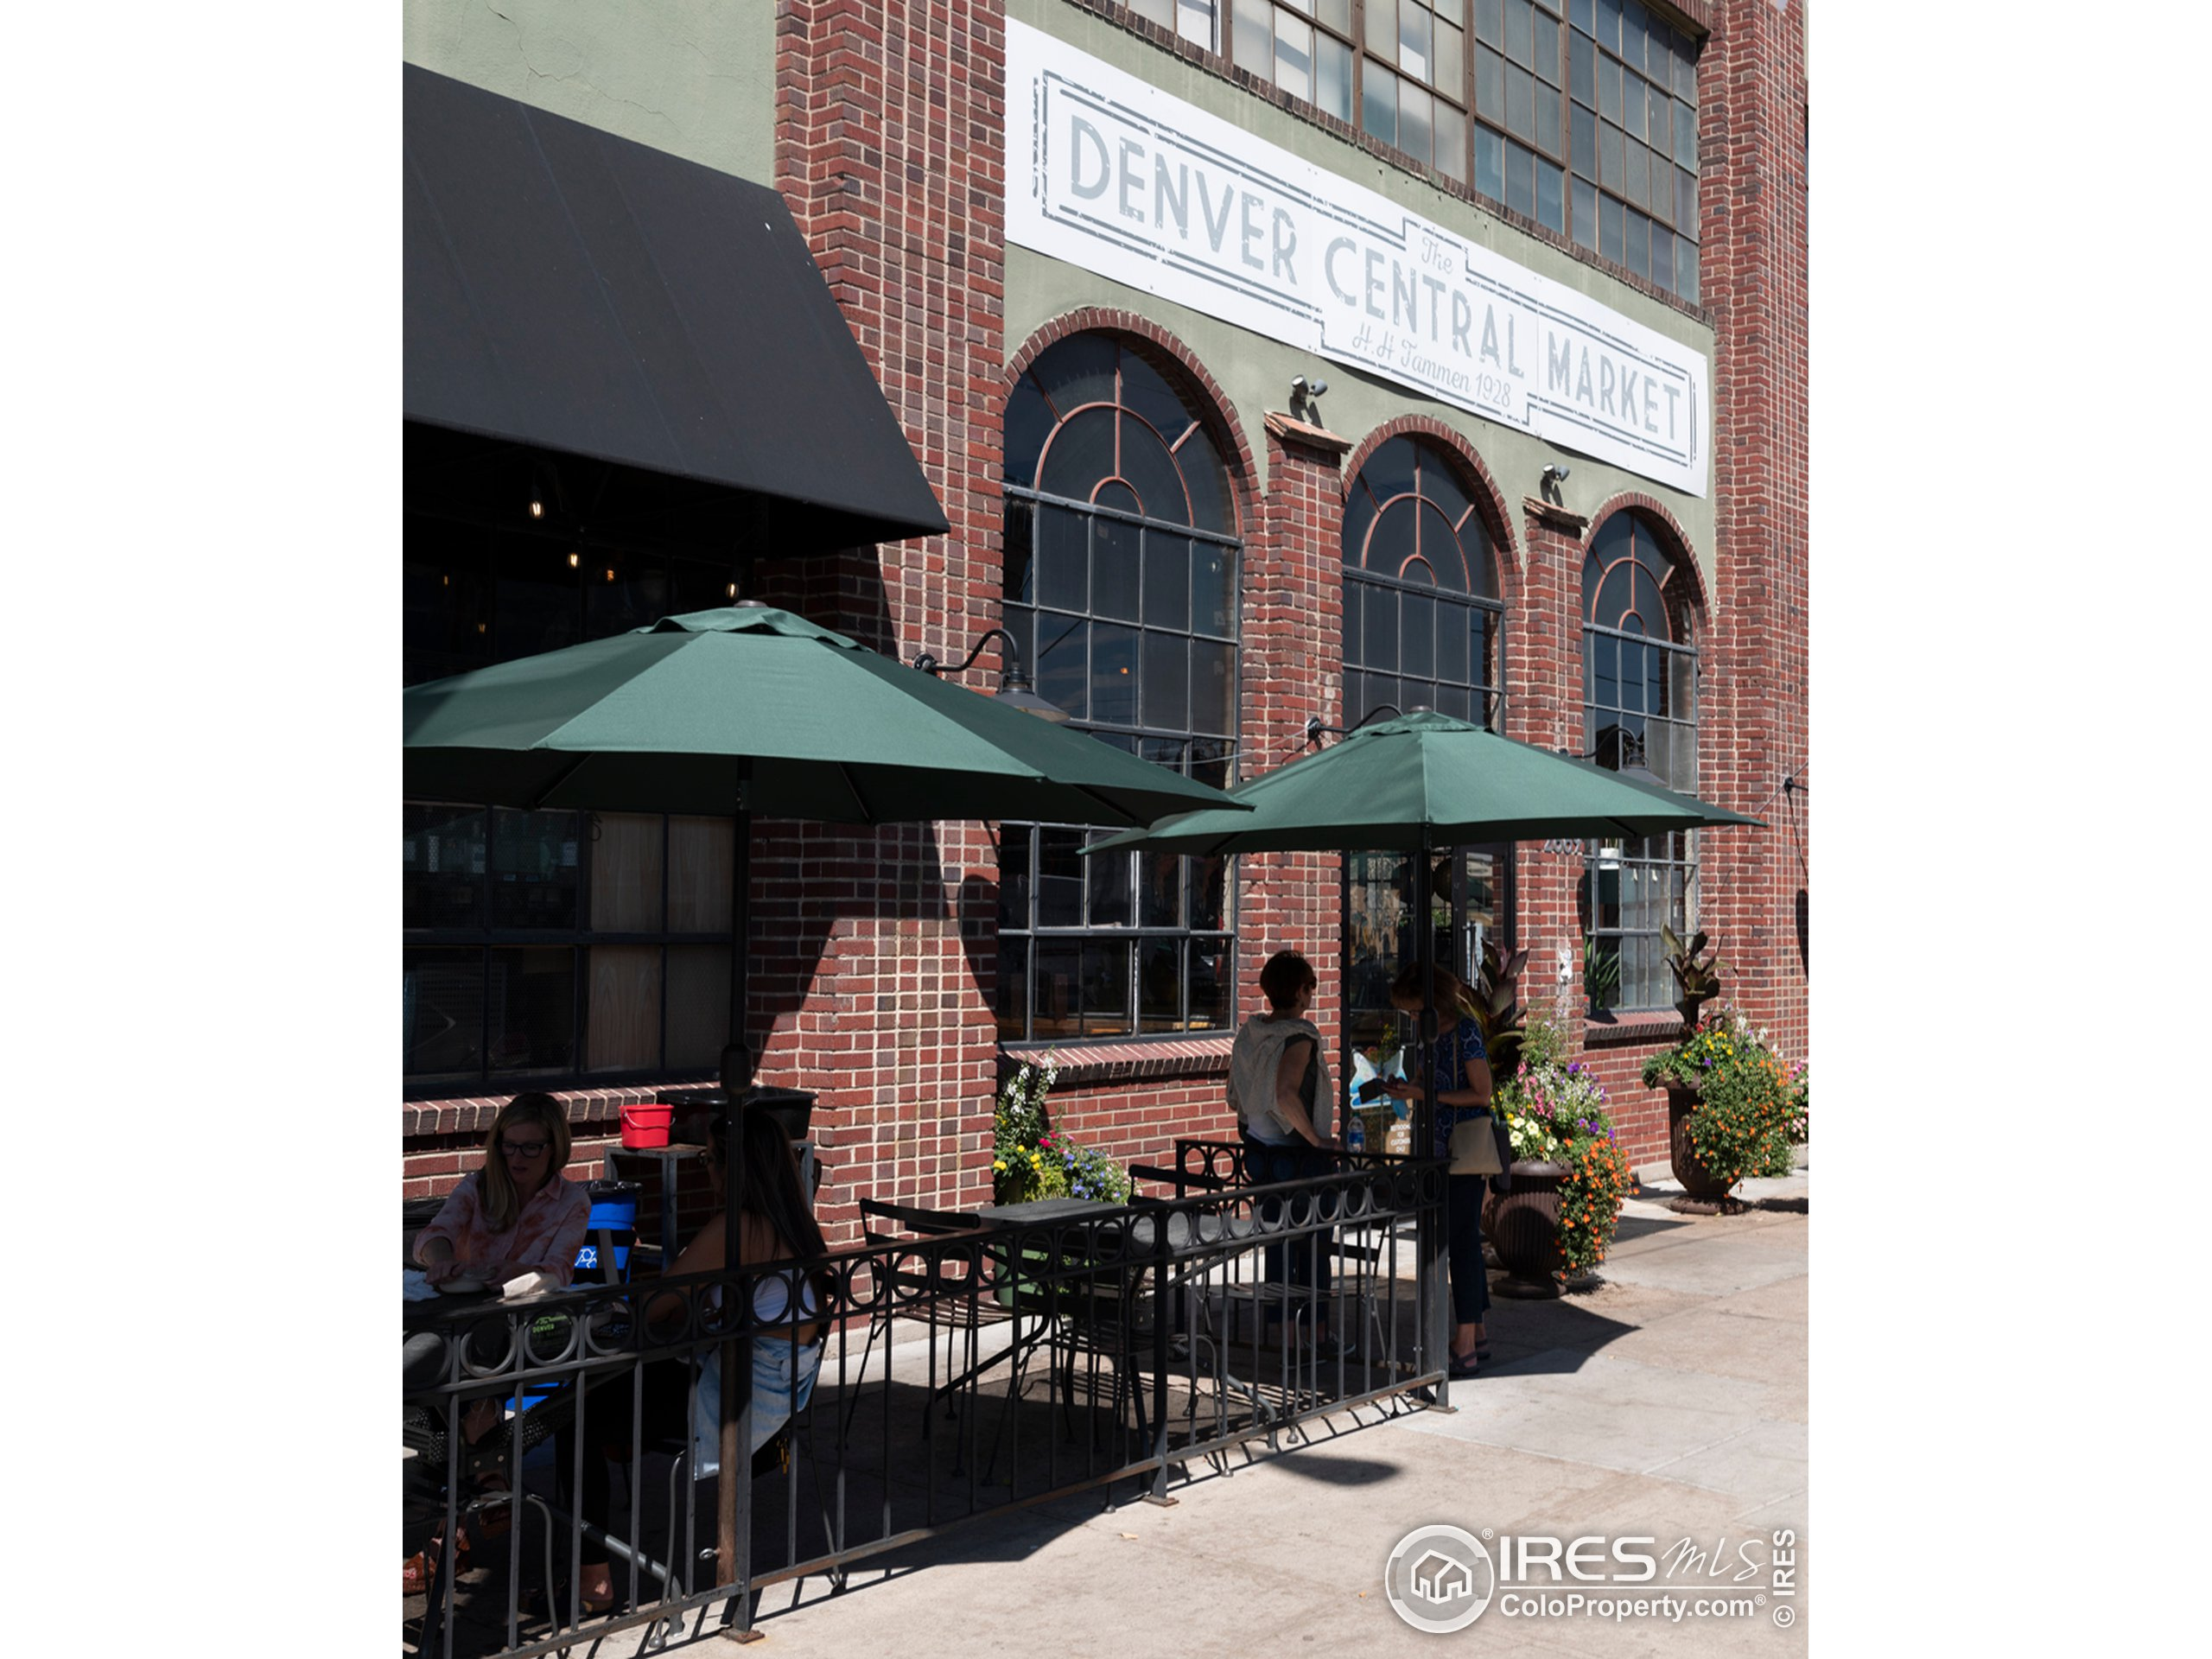 Excellent options for local dining and nightlife!